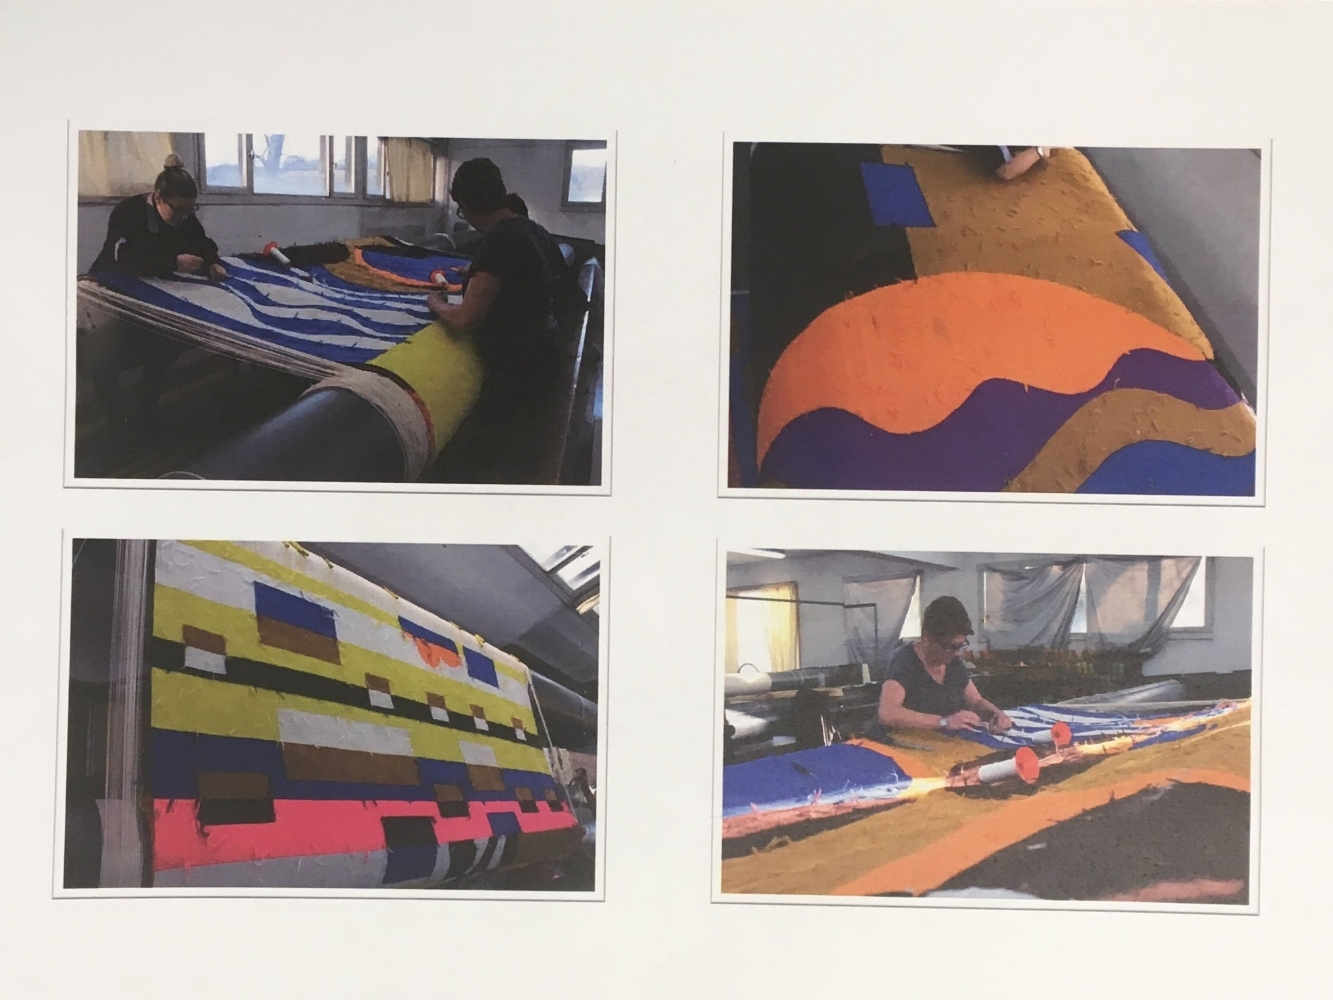 Atelier Pinton working on the Rio Azul tapestry -photos shared by Atelier Pinto at the White Cube breakfast event- Photo:Geraldine Wharry